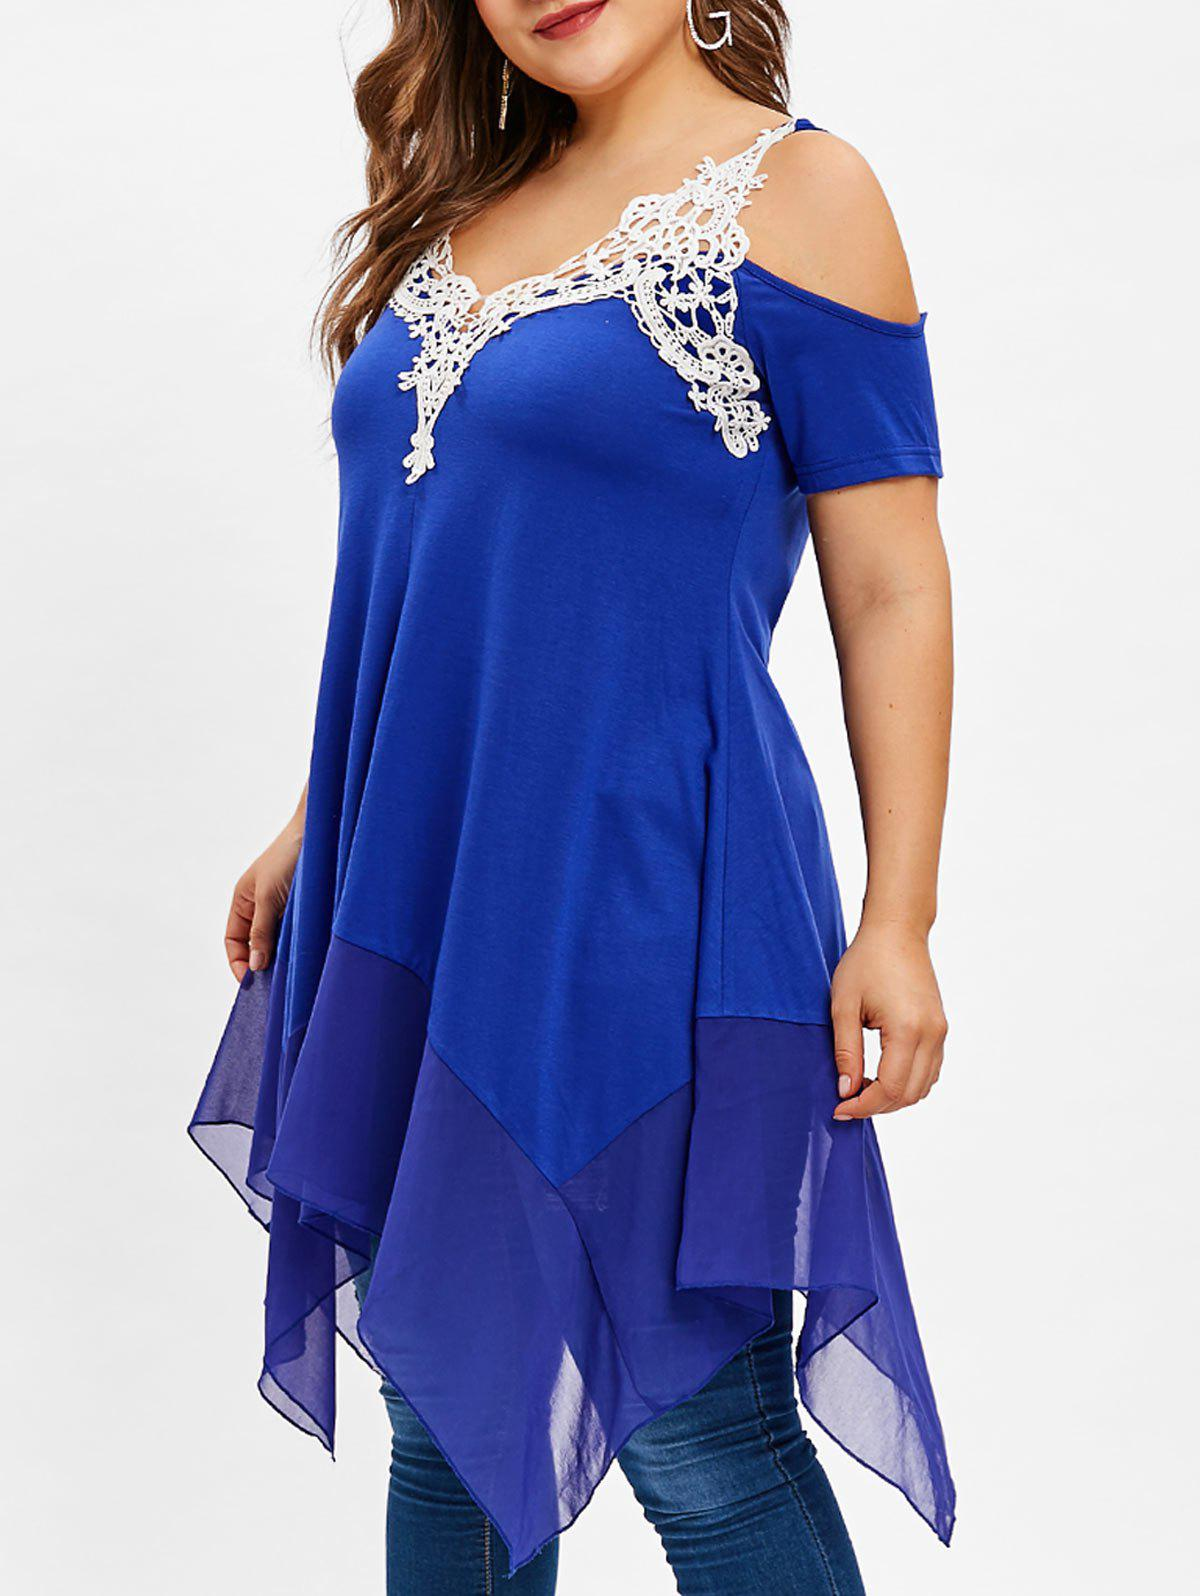 Hot Cold Shoulder Plus Size Handkerchief Applique Tee